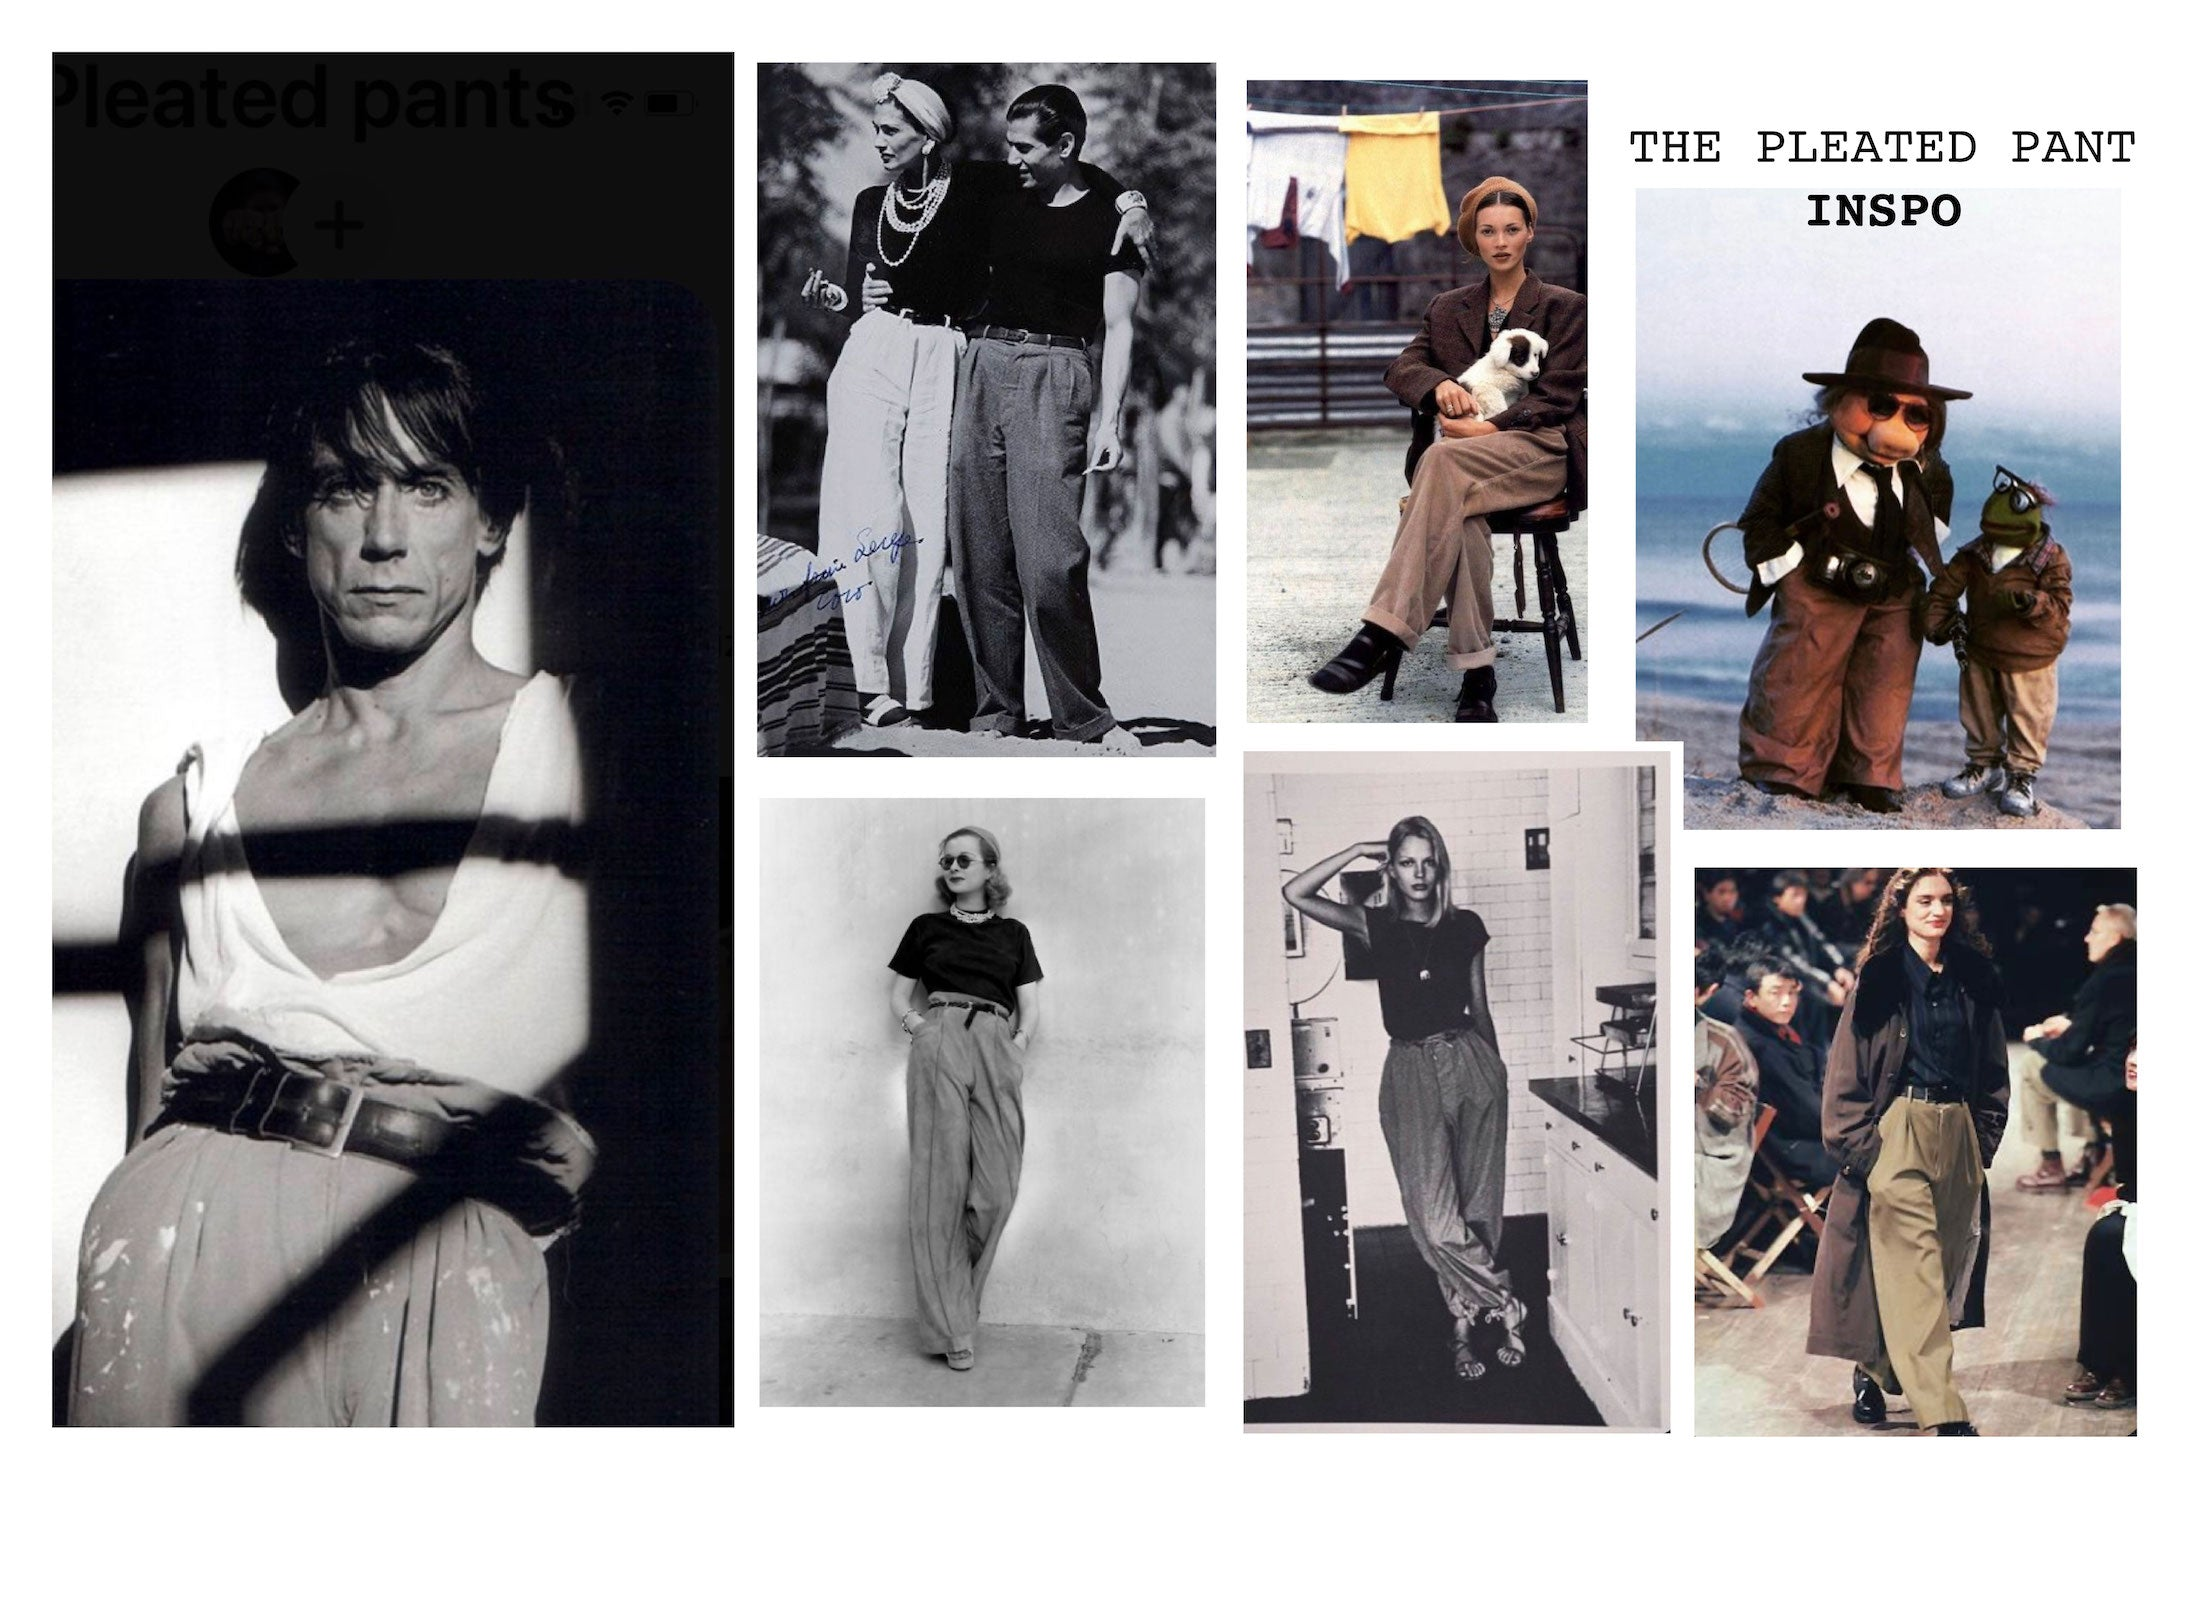 The Pleated Pant Inspo